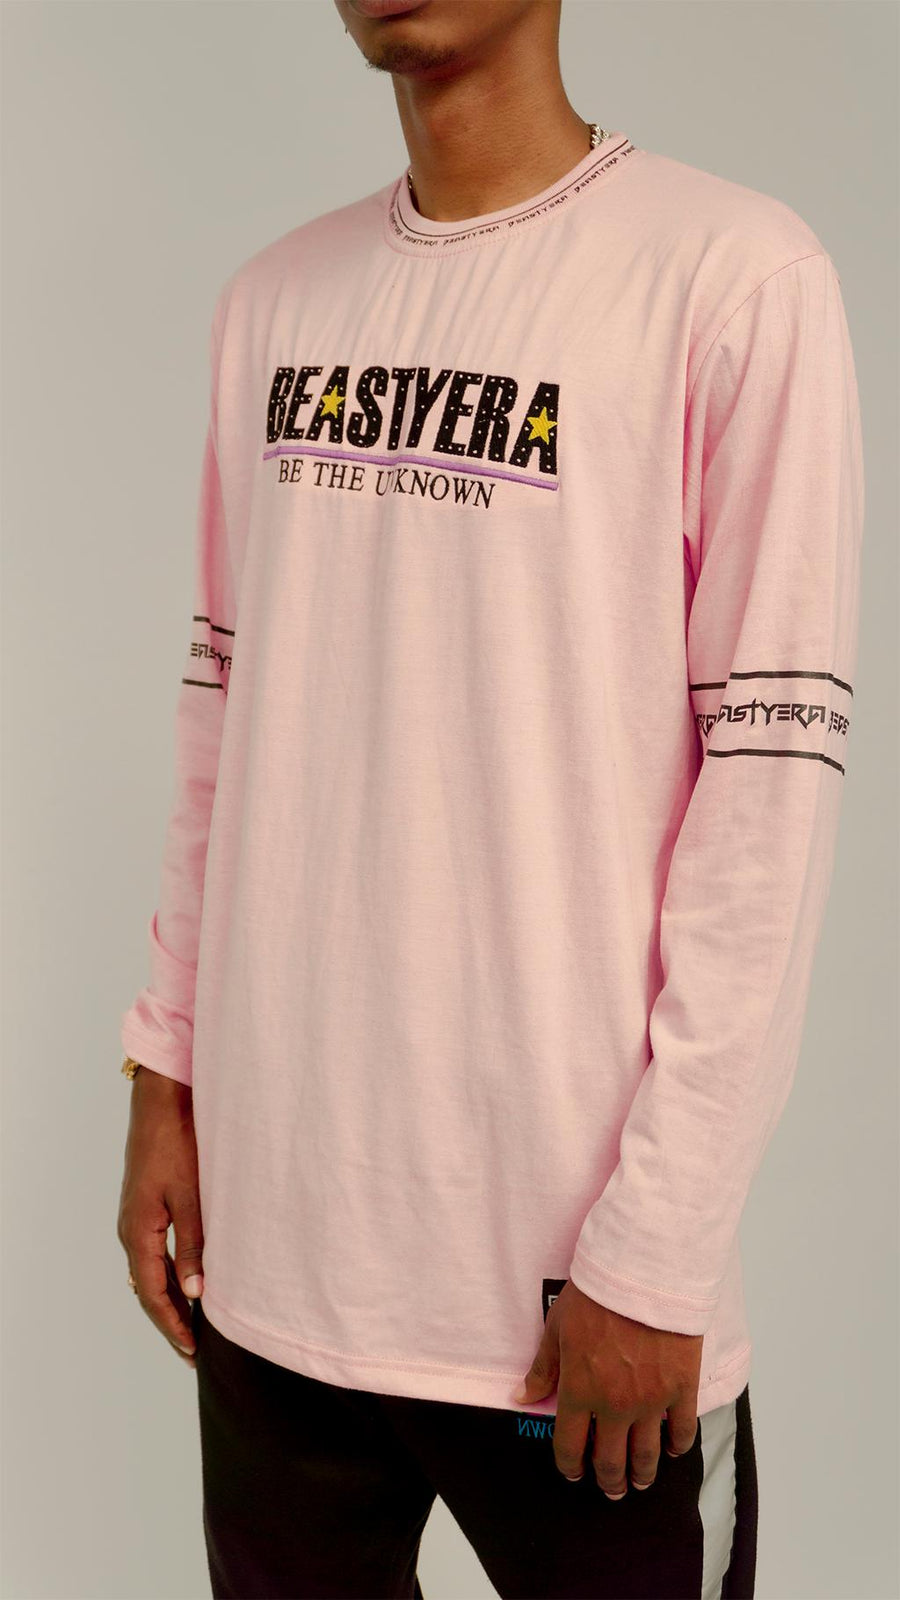 Pink Rebirth Long Sleeve T-shirt - BeastyEra